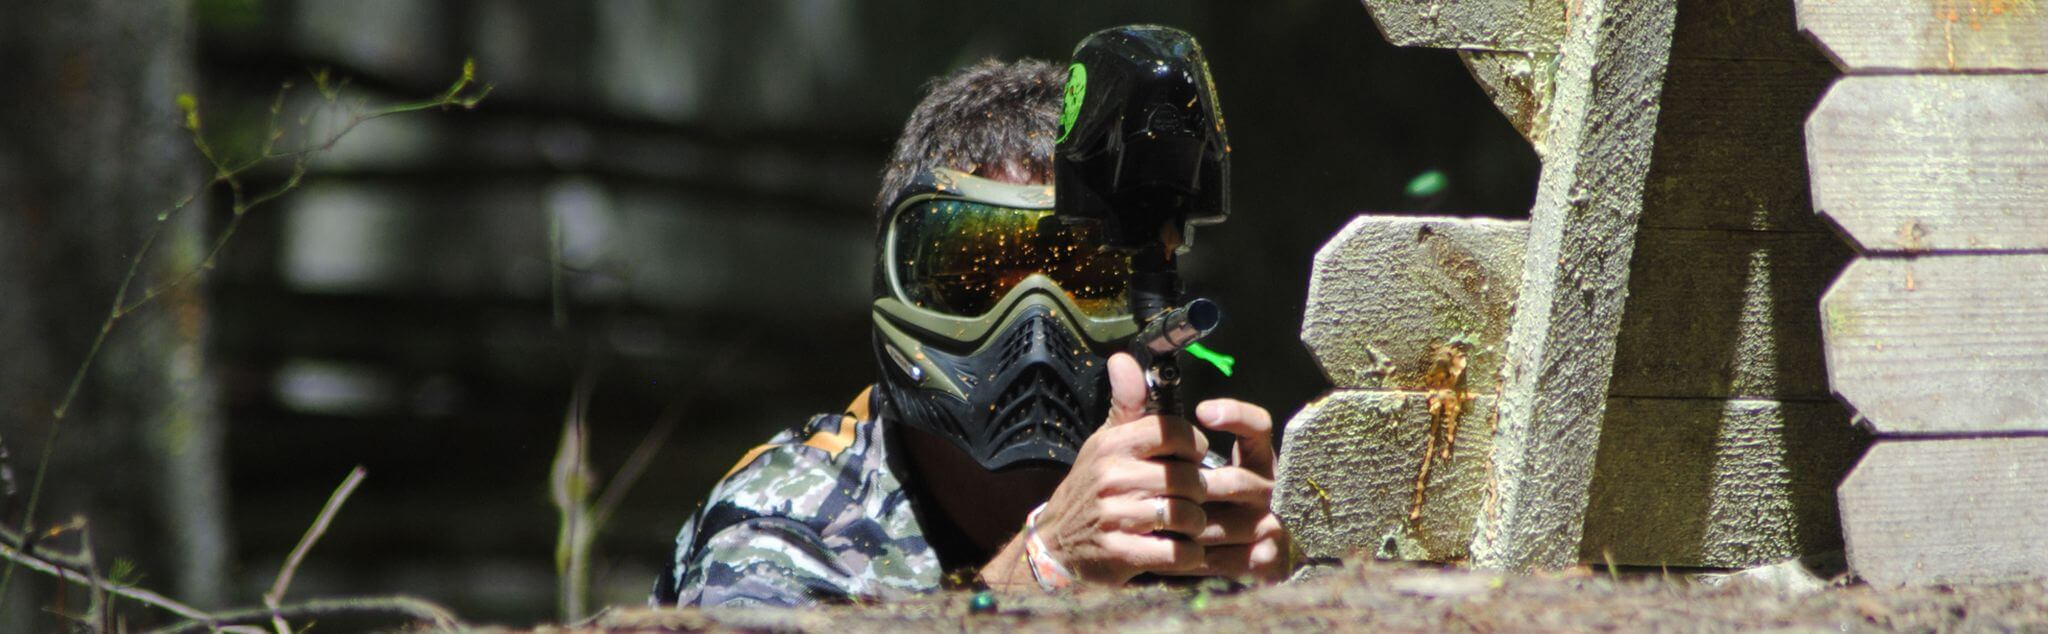 Paintball en Andorra la Vella